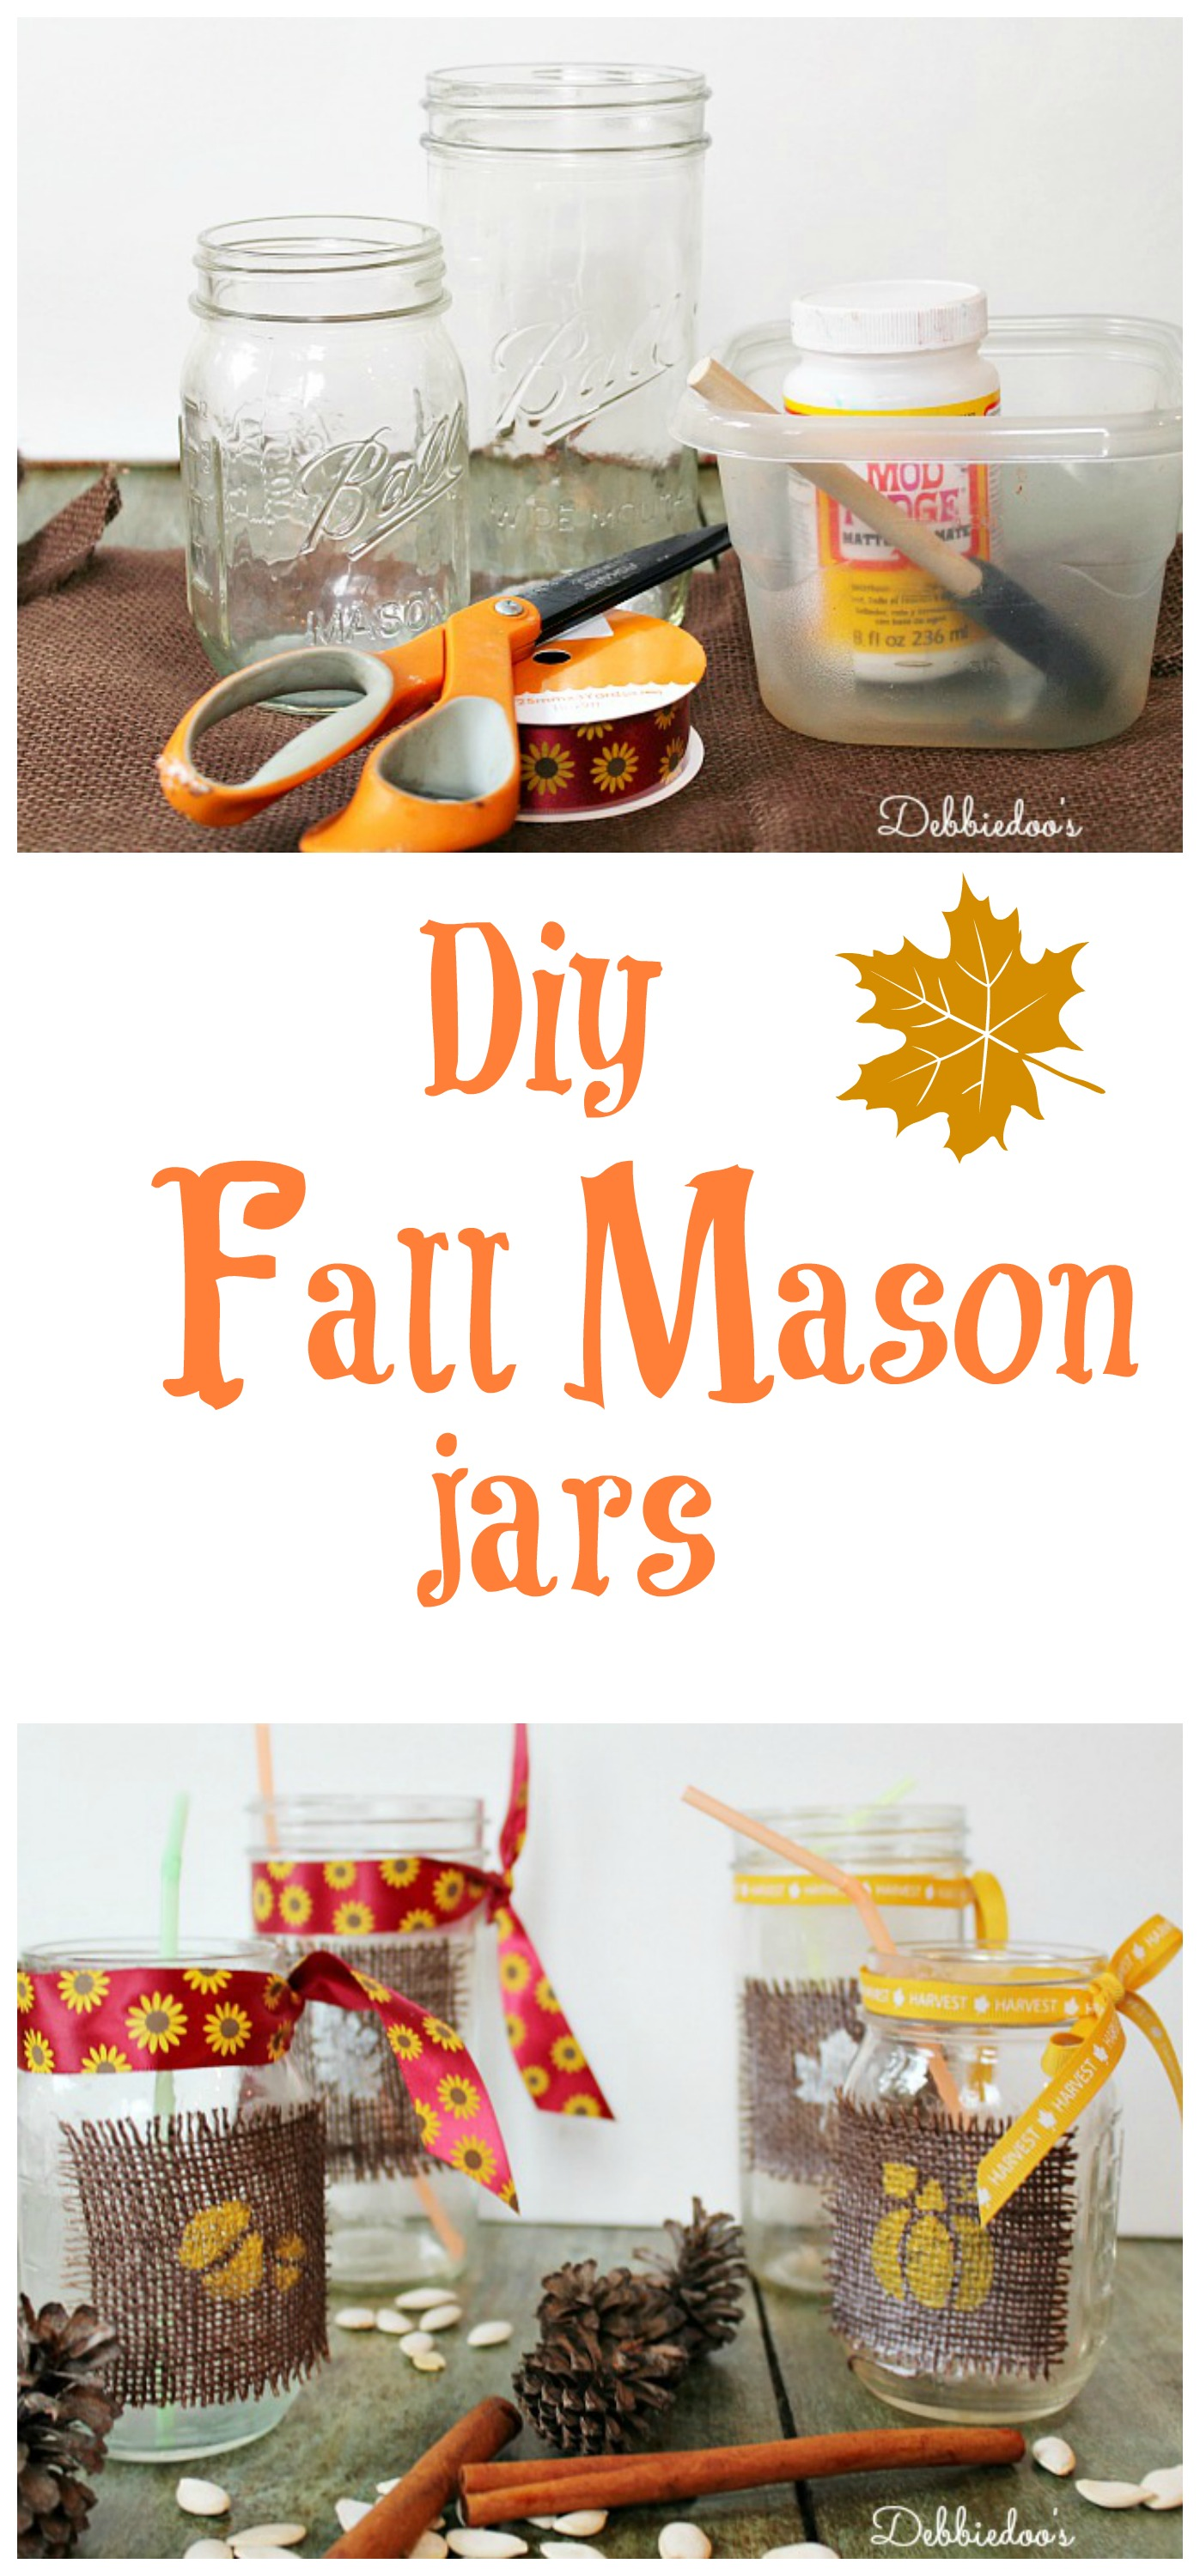 diy fall mason jars debbiedoos